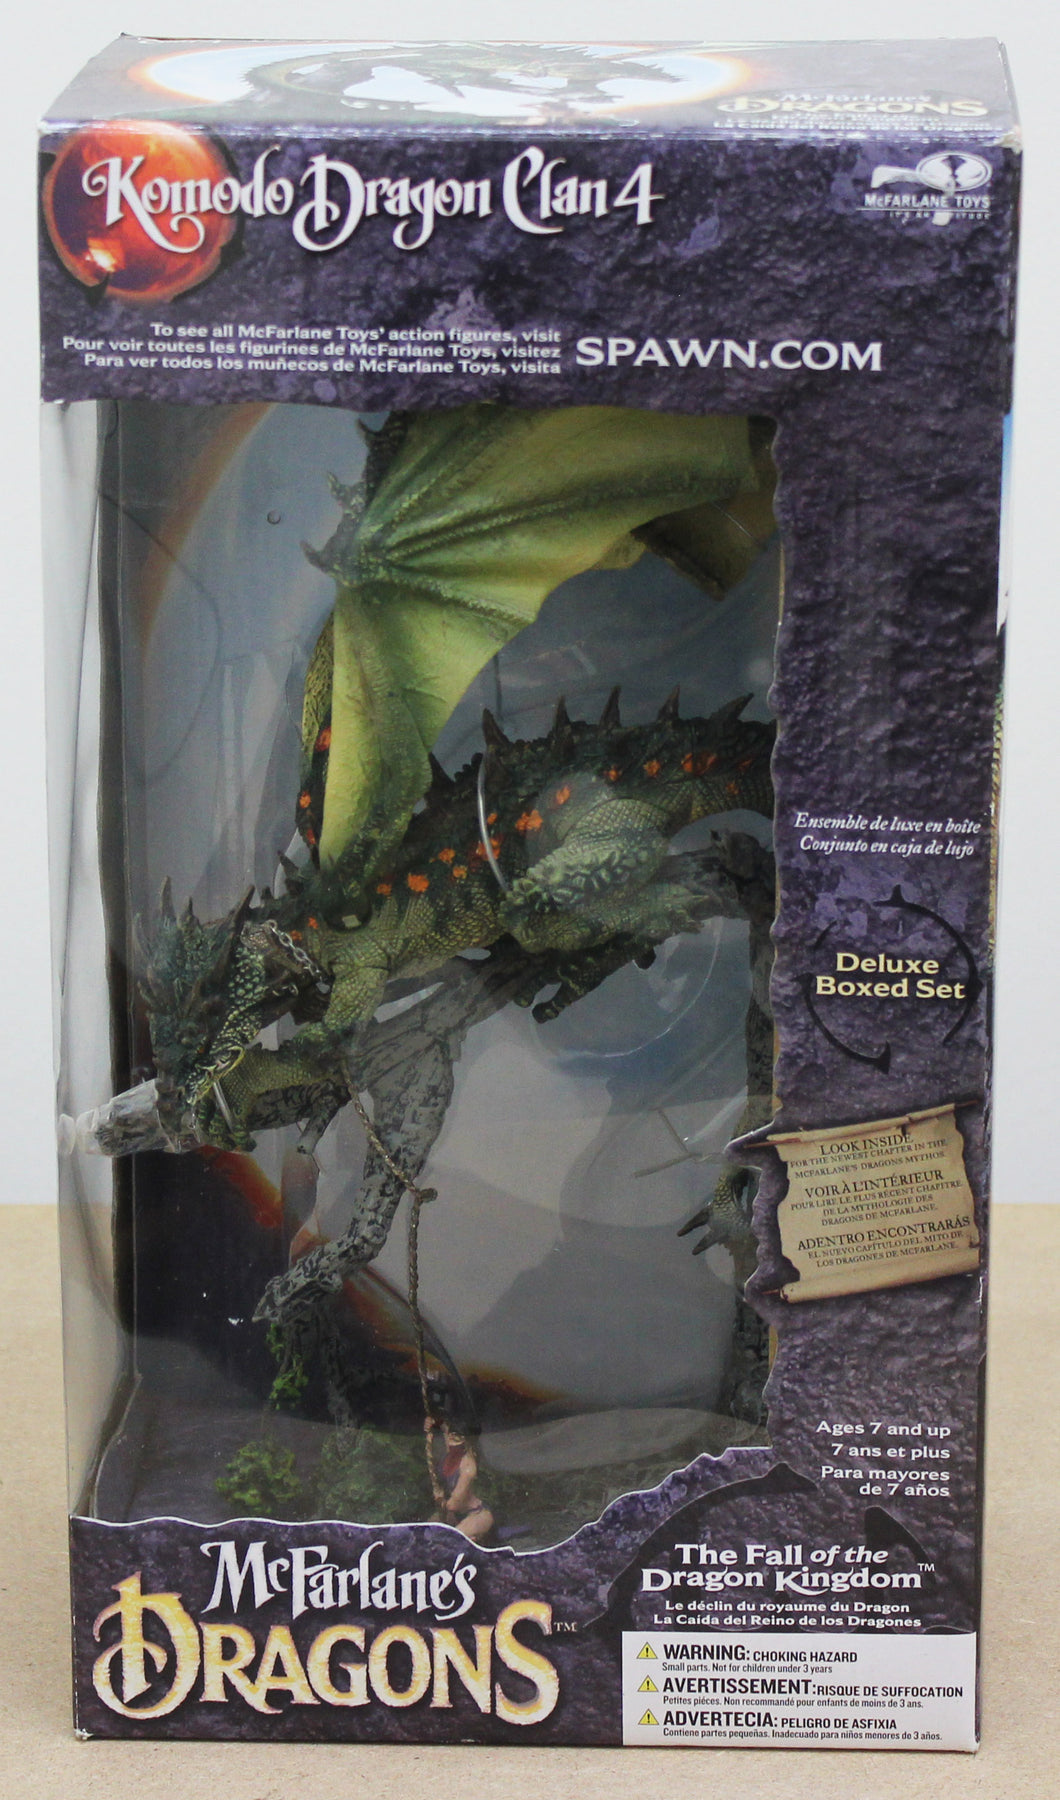 McFarlane's Dragons - Komodo Dragon Clan 4